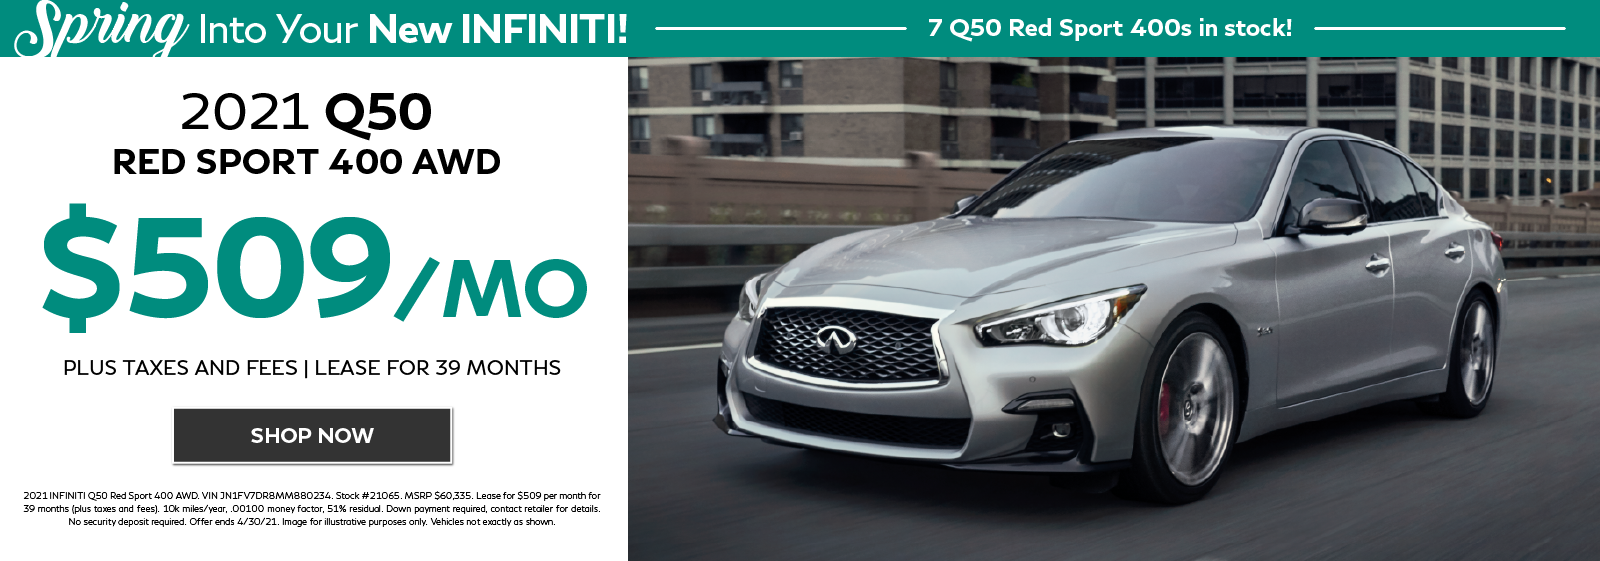 2021 INFINITI Q50 RED SPORT 400 AWD Lease offer. Click to shop now.